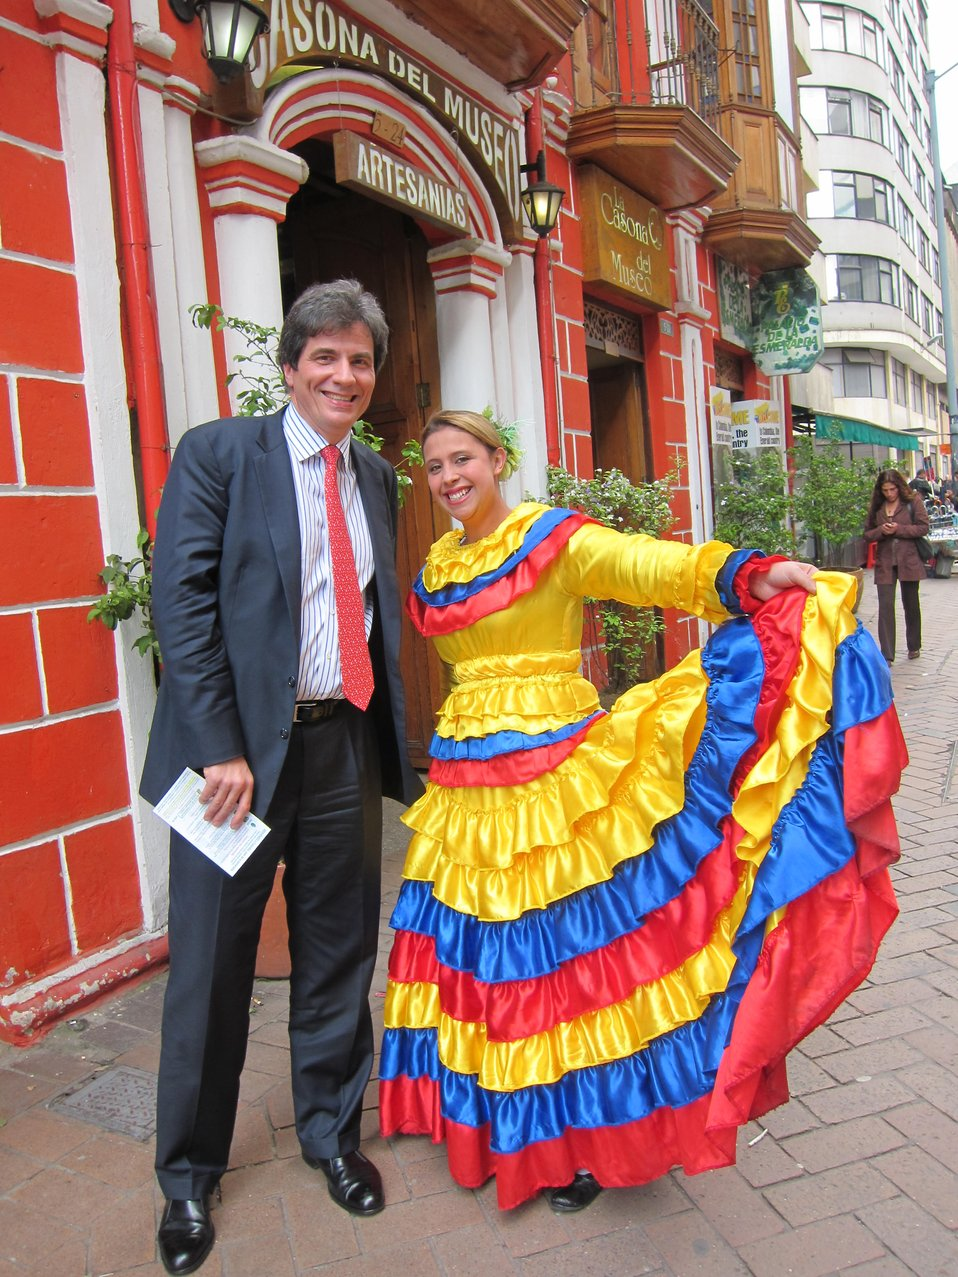 Assistant Secretary Fernadez Travels to Colombia